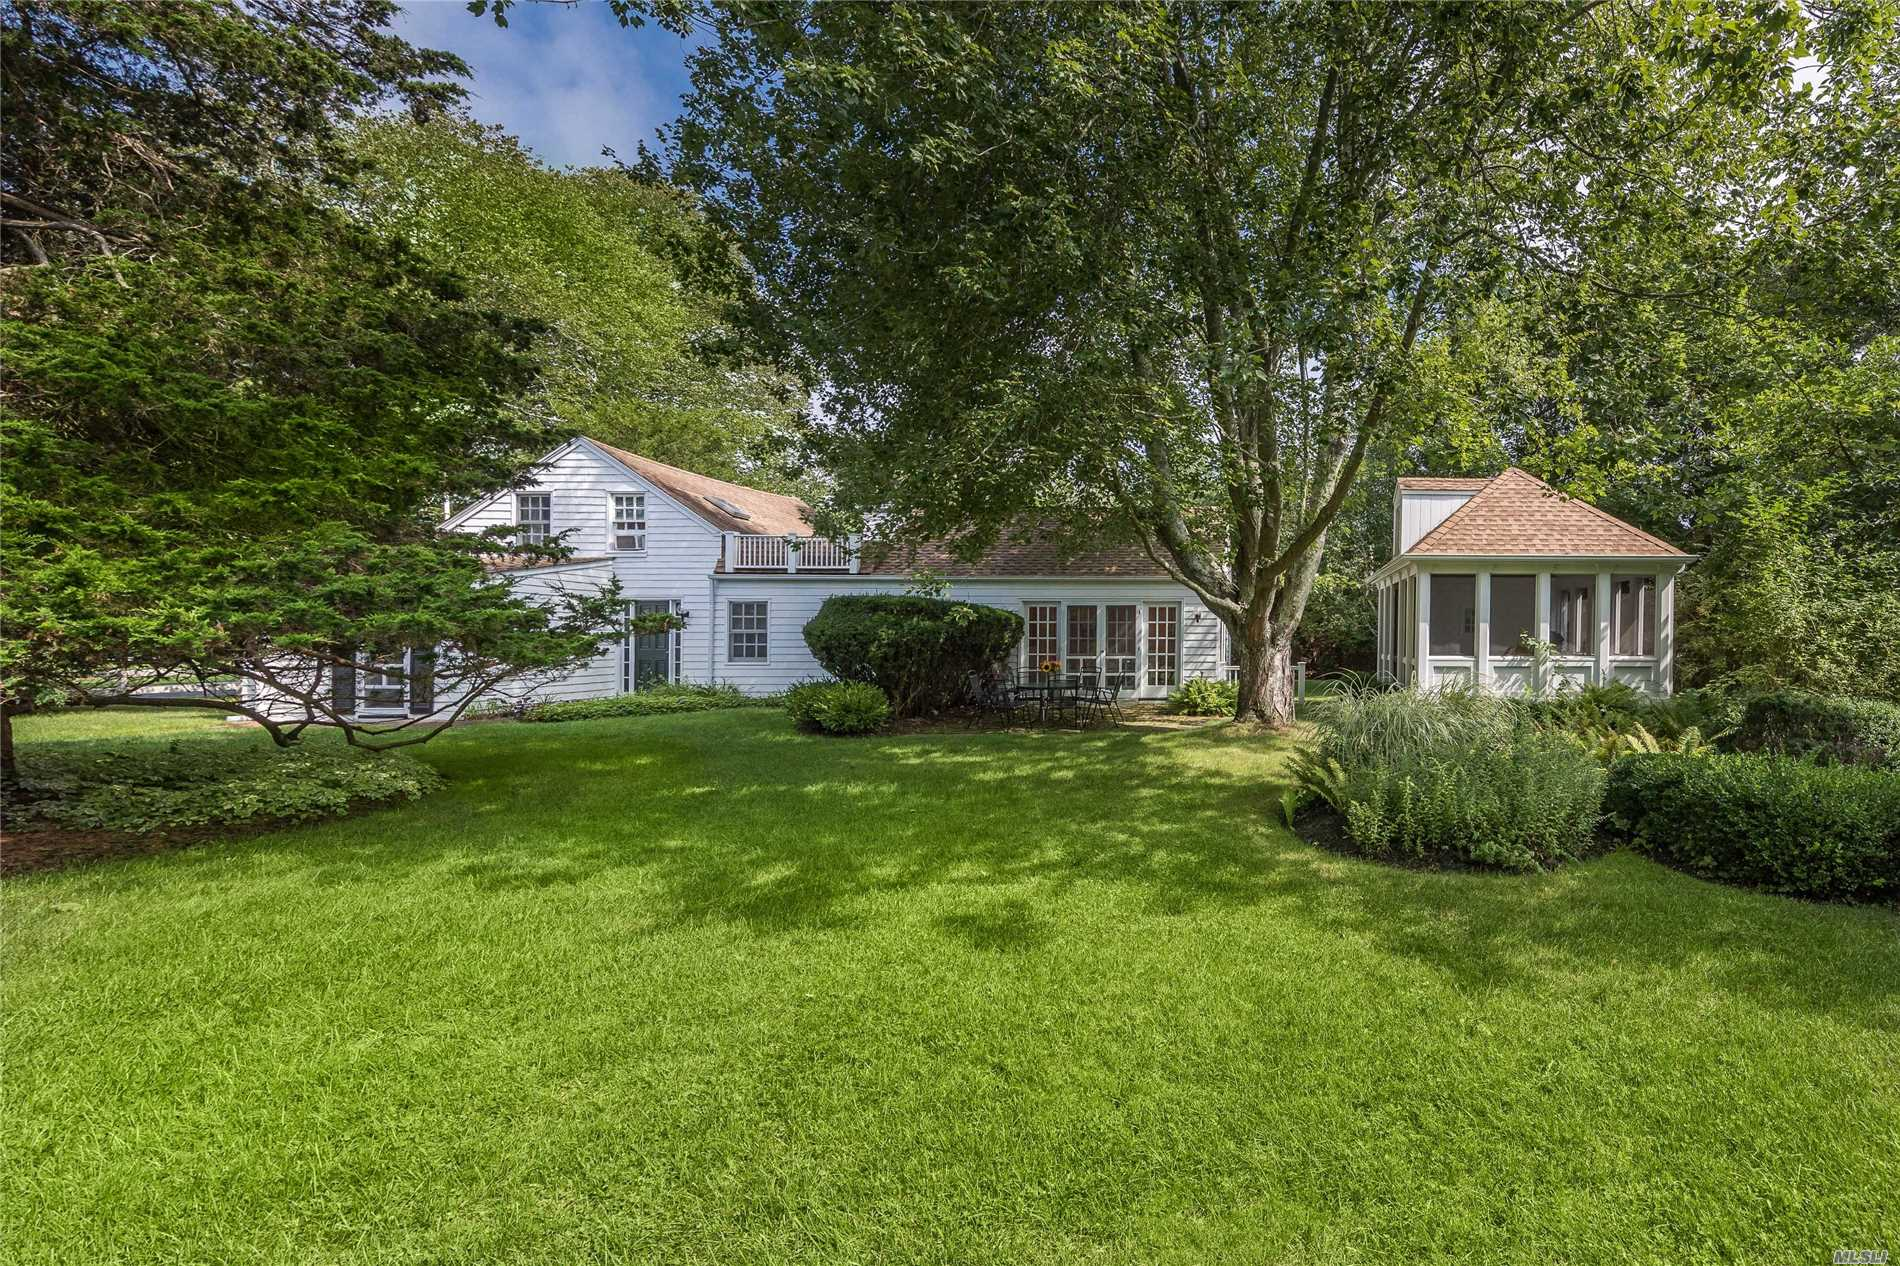 Charming Farmhouse In Westhampton. 3 Bedroom, 2 Bath Home Sited On 7/10 Of An Acre. Outdoor Pavilion Provides The Ultimate Setting For Warm Weather Dining Or Quiet Relaxation. This Easy Living Sized Property Offers Room For Pool. Conveniently Located Just Moments From Hamptons Beaches.